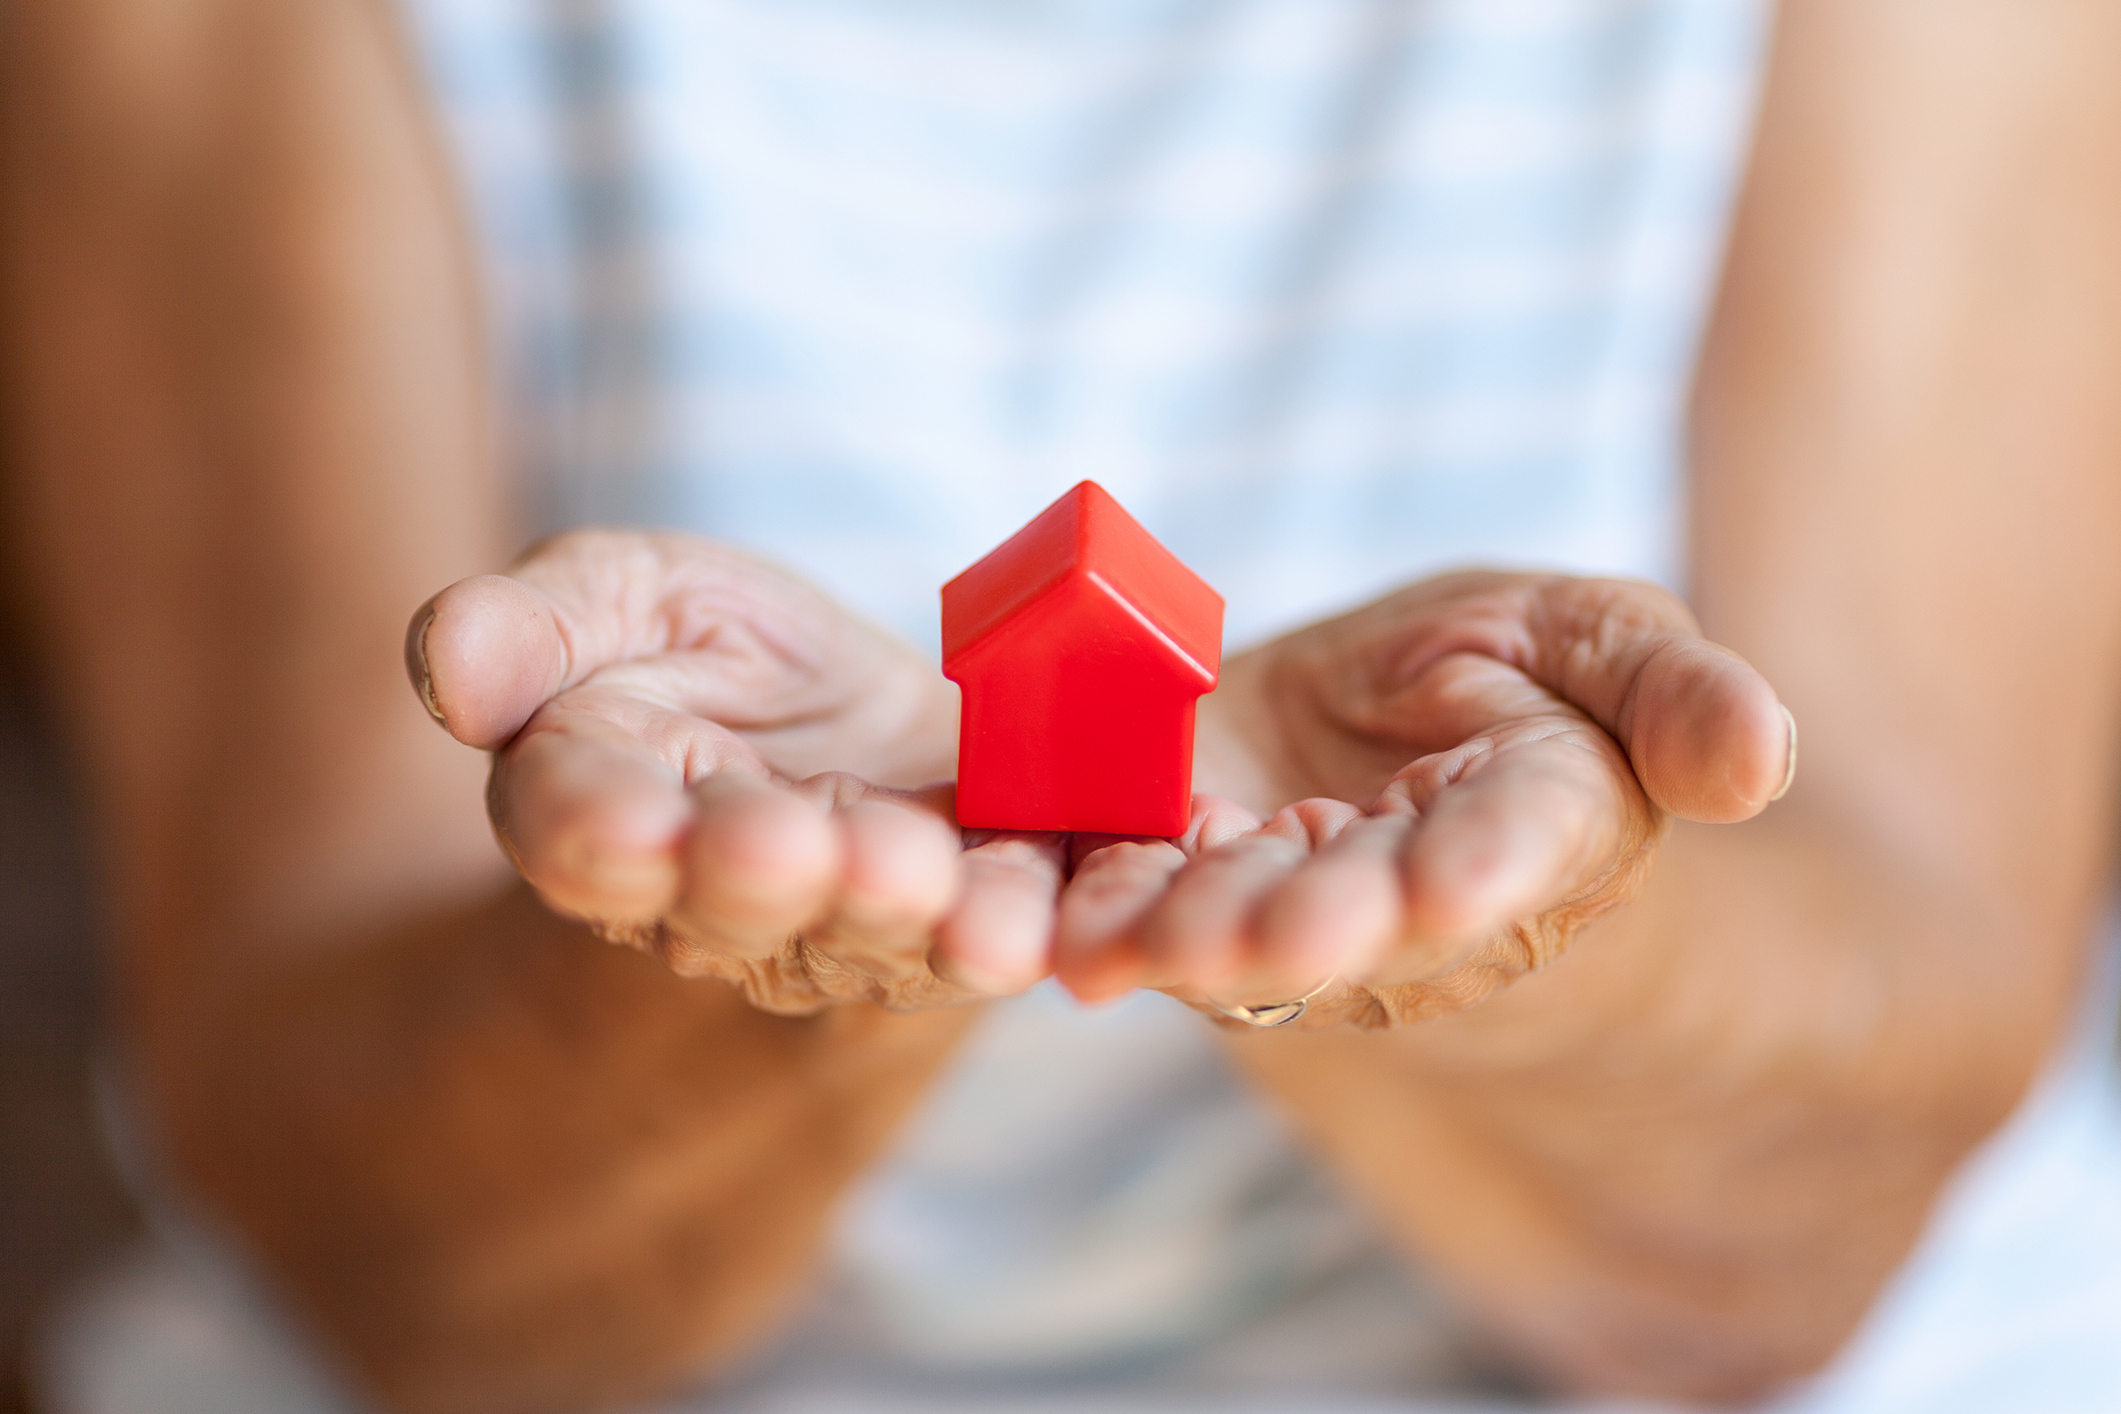 SMSF Loans: 2 Things You Should Know about this Home Loan